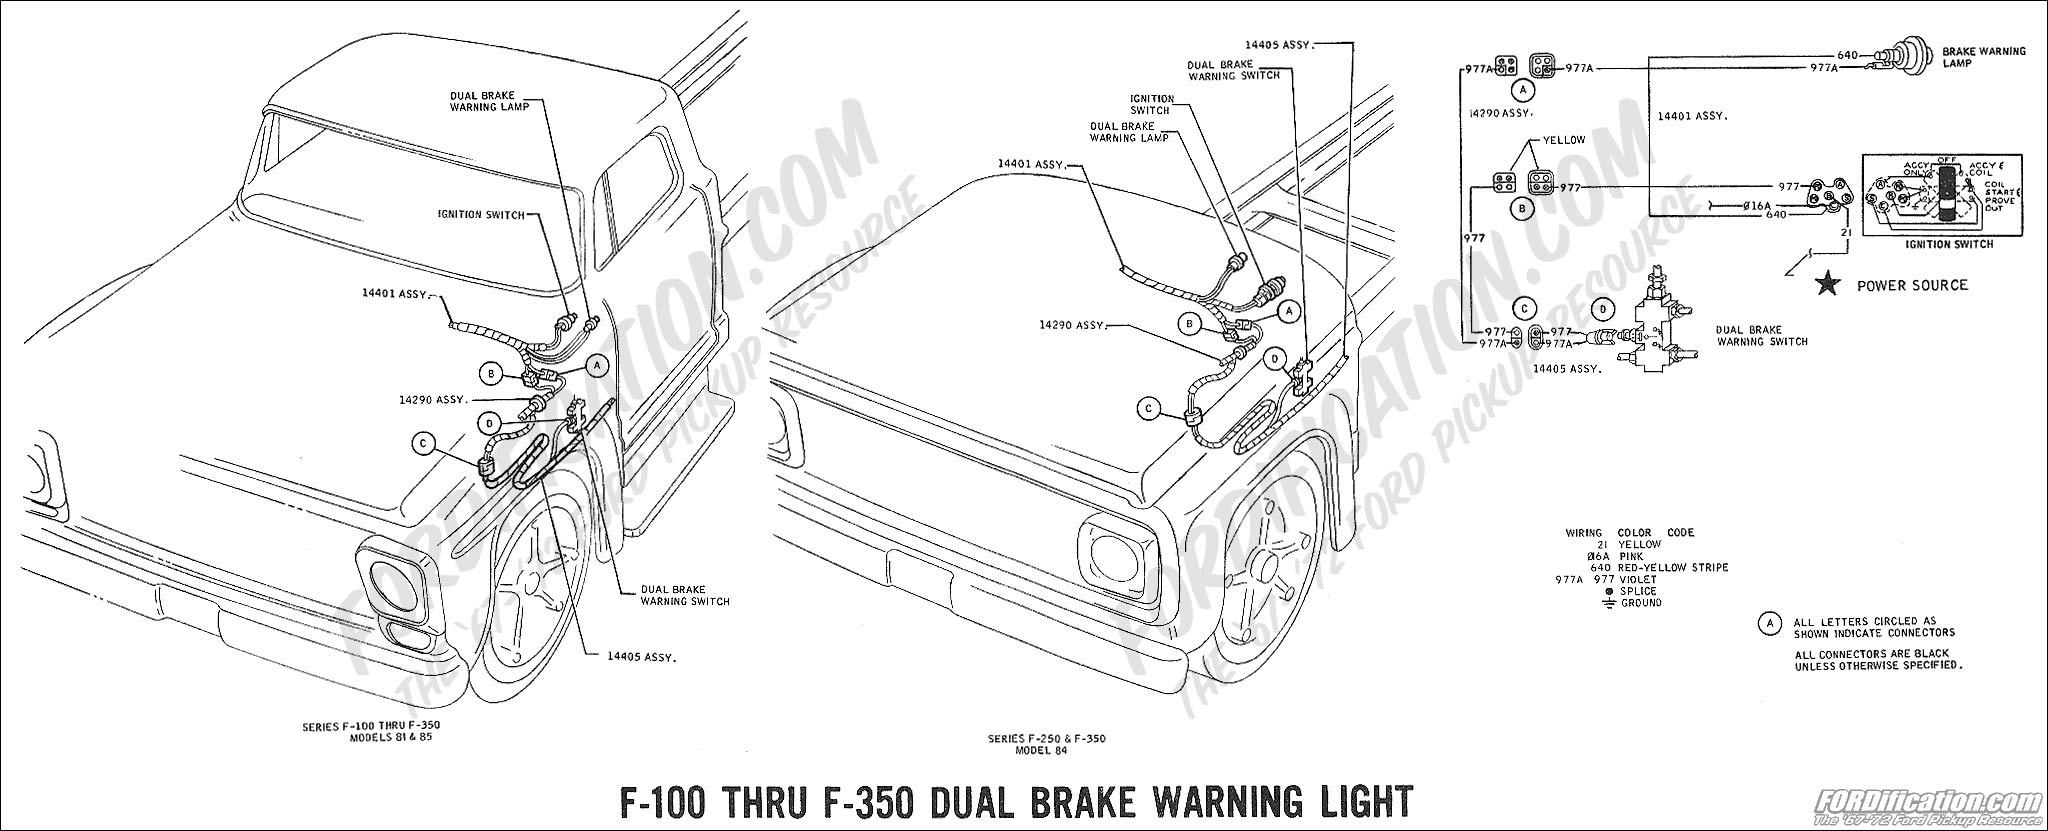 1971 Ford F 250 Wiring Diagram Library 2001 Diesel 1931 Model A Diagrams U2022 Rh Parntesis Co F250 Fuse Box 1970 F100 1969 100 Thru 350 Dual Brake Warning Light